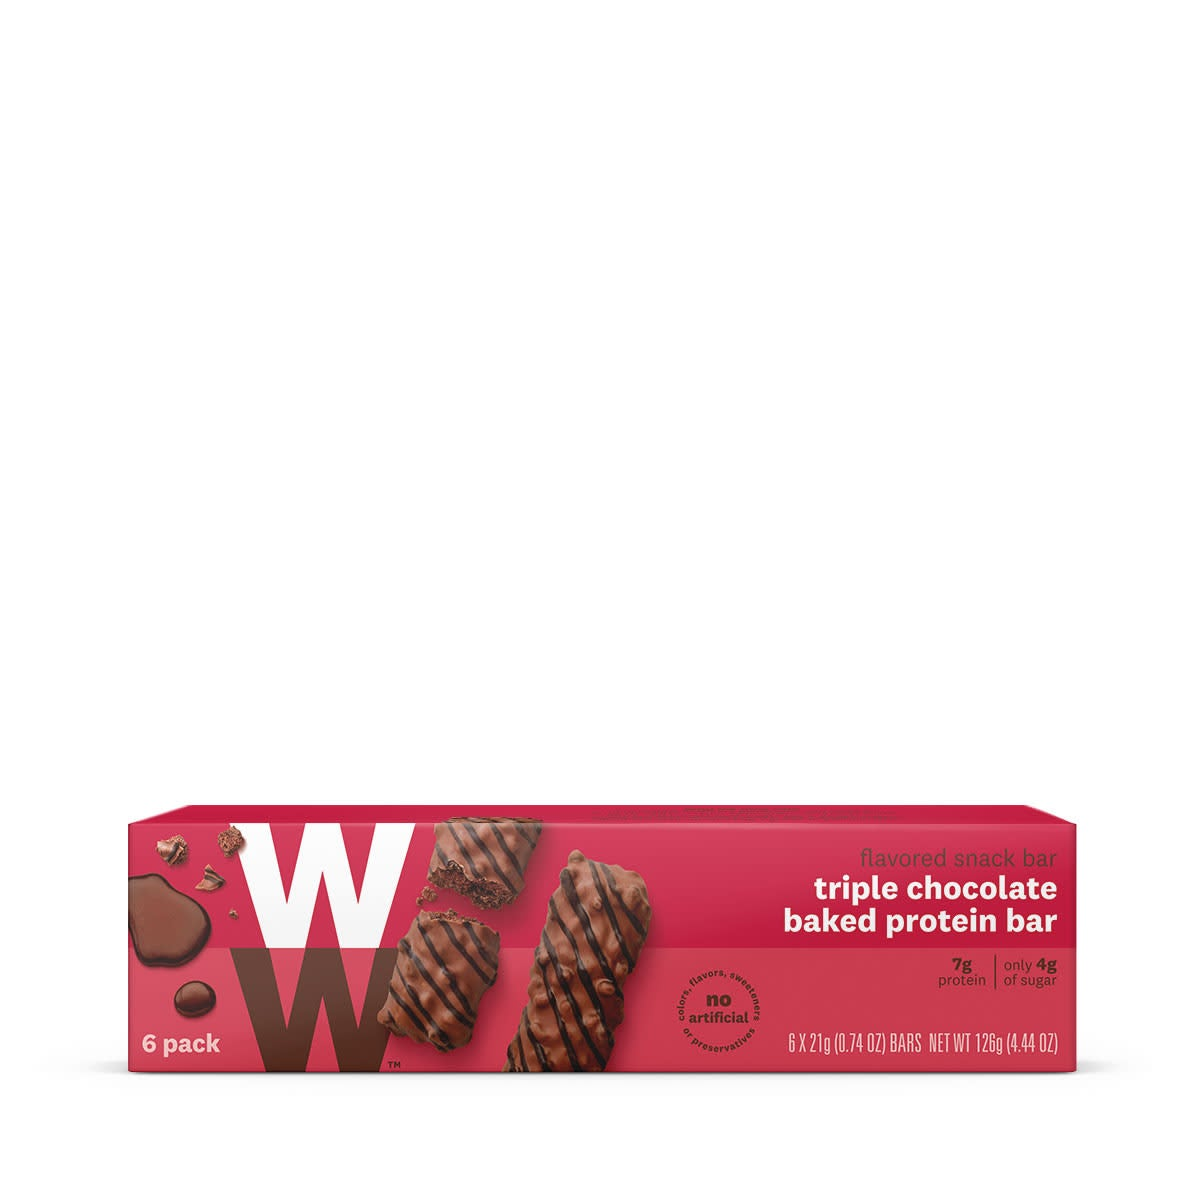 Triple Chocolate Baked Protein Bar, front of box, 6 pack, 7g of protein, only 4g of sugar